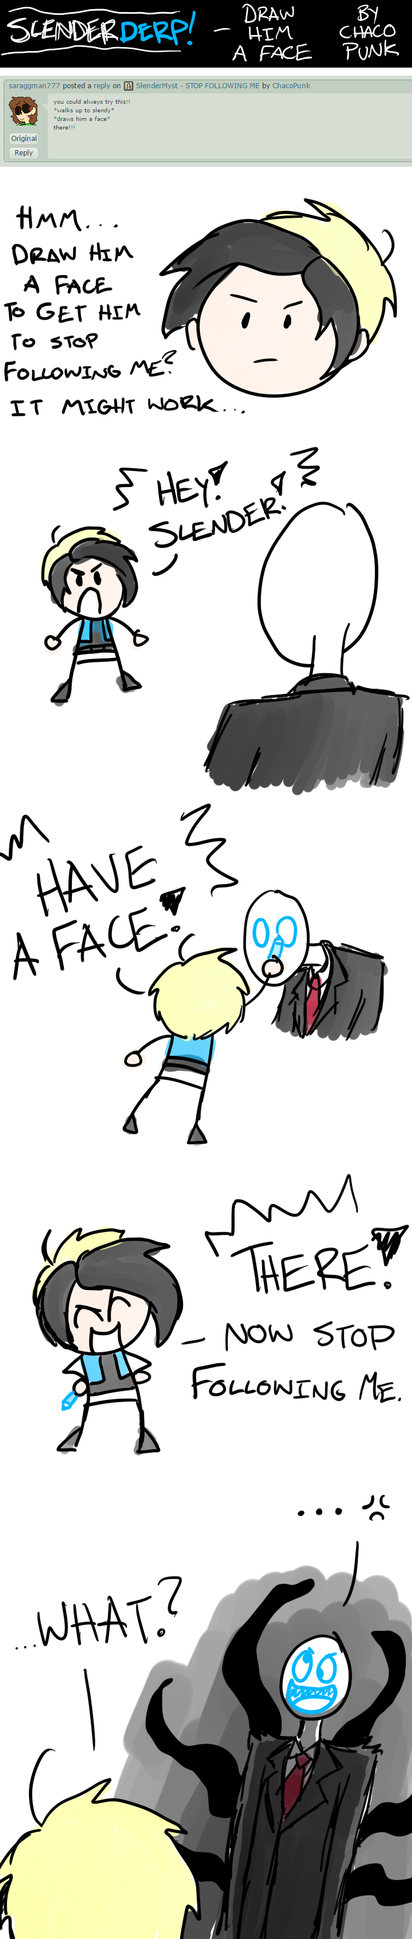 SlenderDERP - Draw Him a Face by ChacoPunk